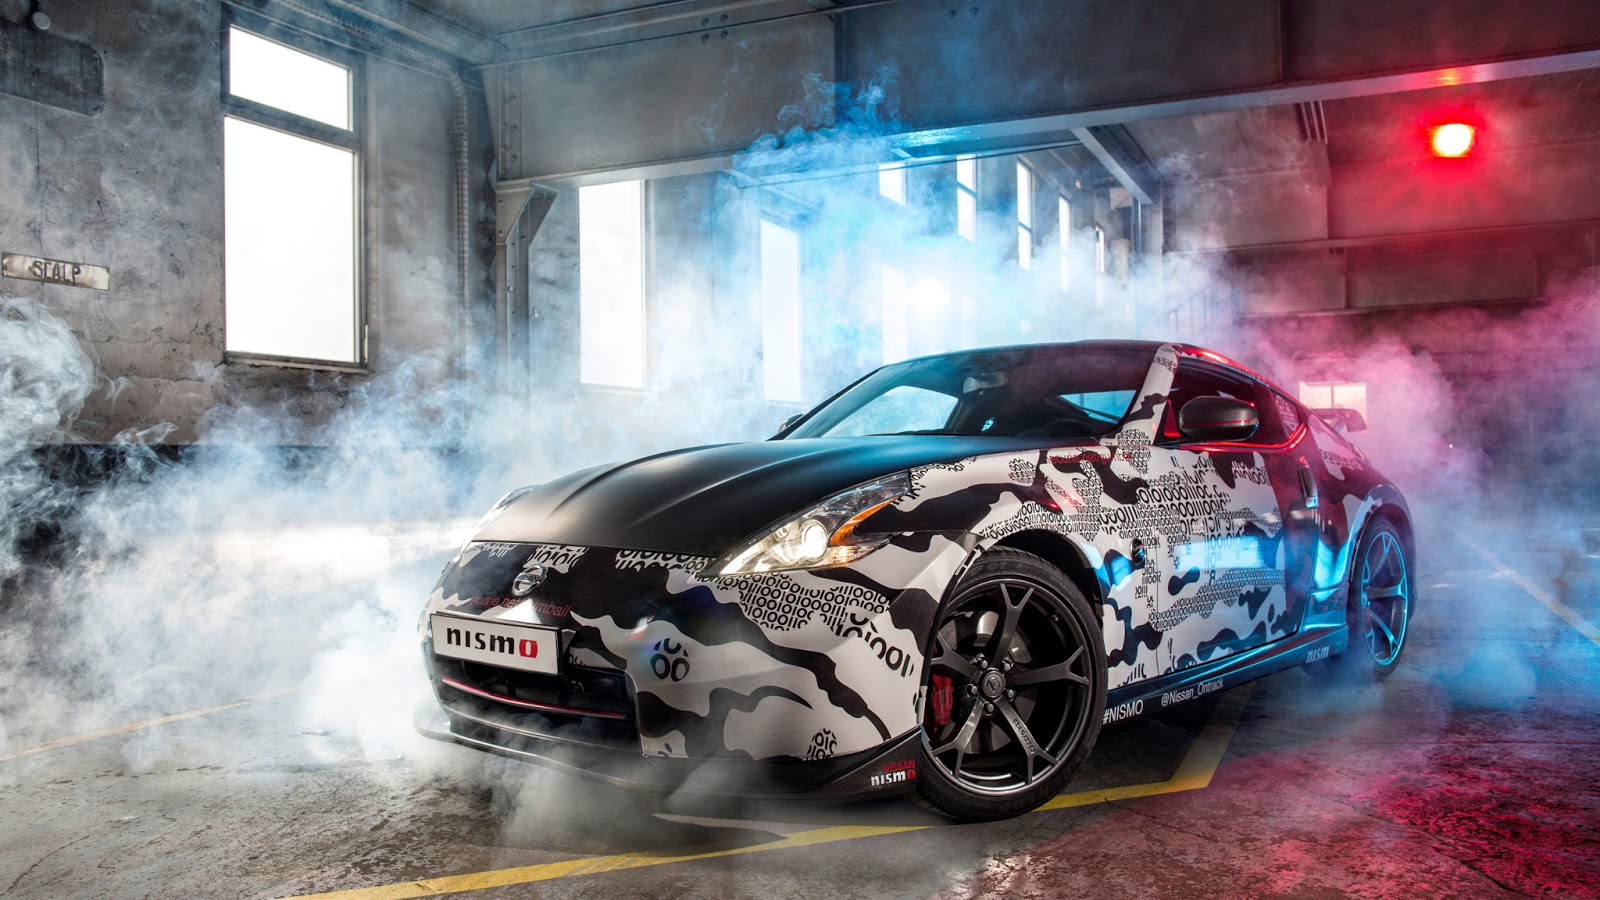 (from Nissan Press Release) Nissan 370Z NISMO Set To Star In The 2013  Gumball 3000 Rally In Europe Next NISMO Road Car Makes Dynamic Debut